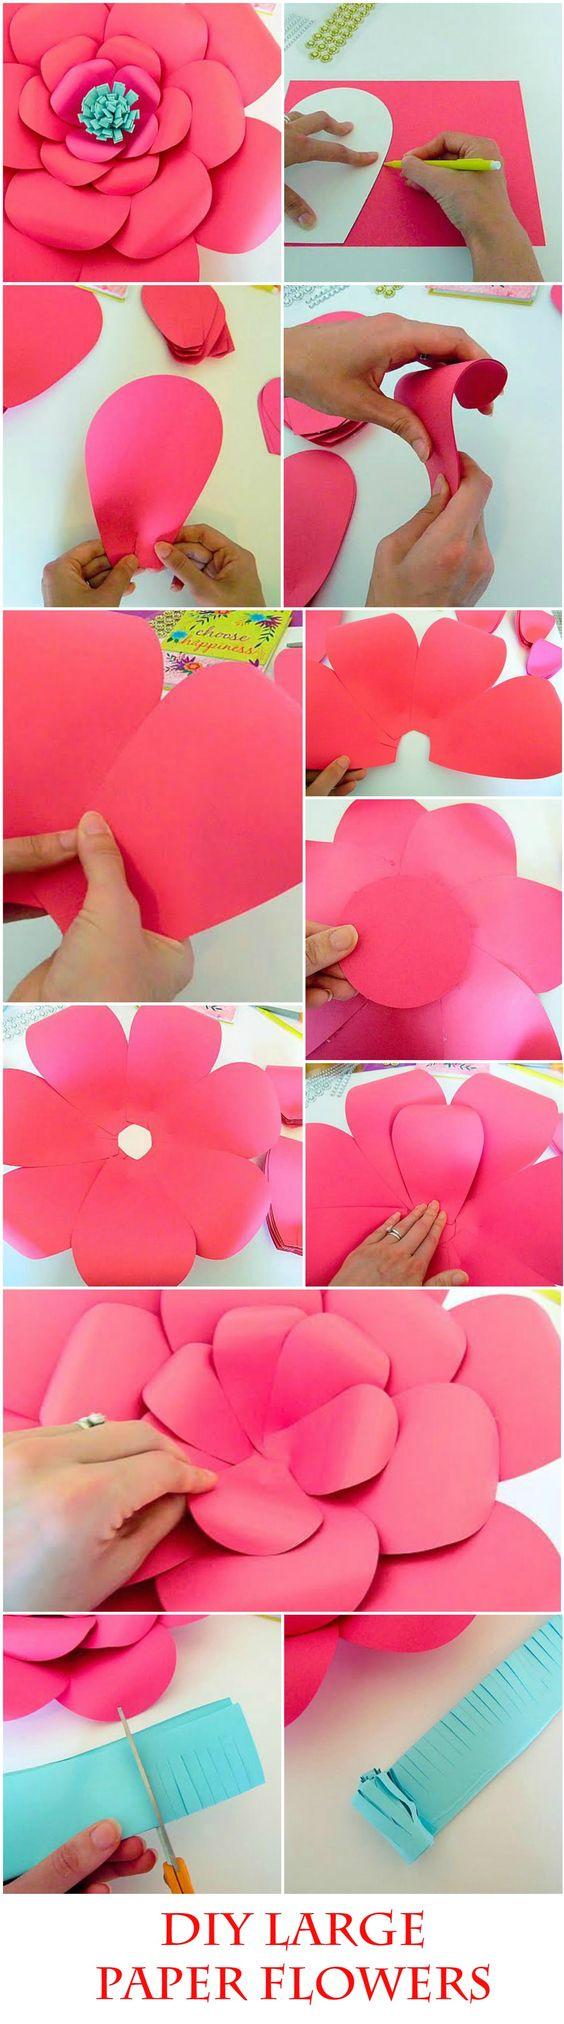 Handmade Flower Tutorials 37 Inspiring Flower Projects